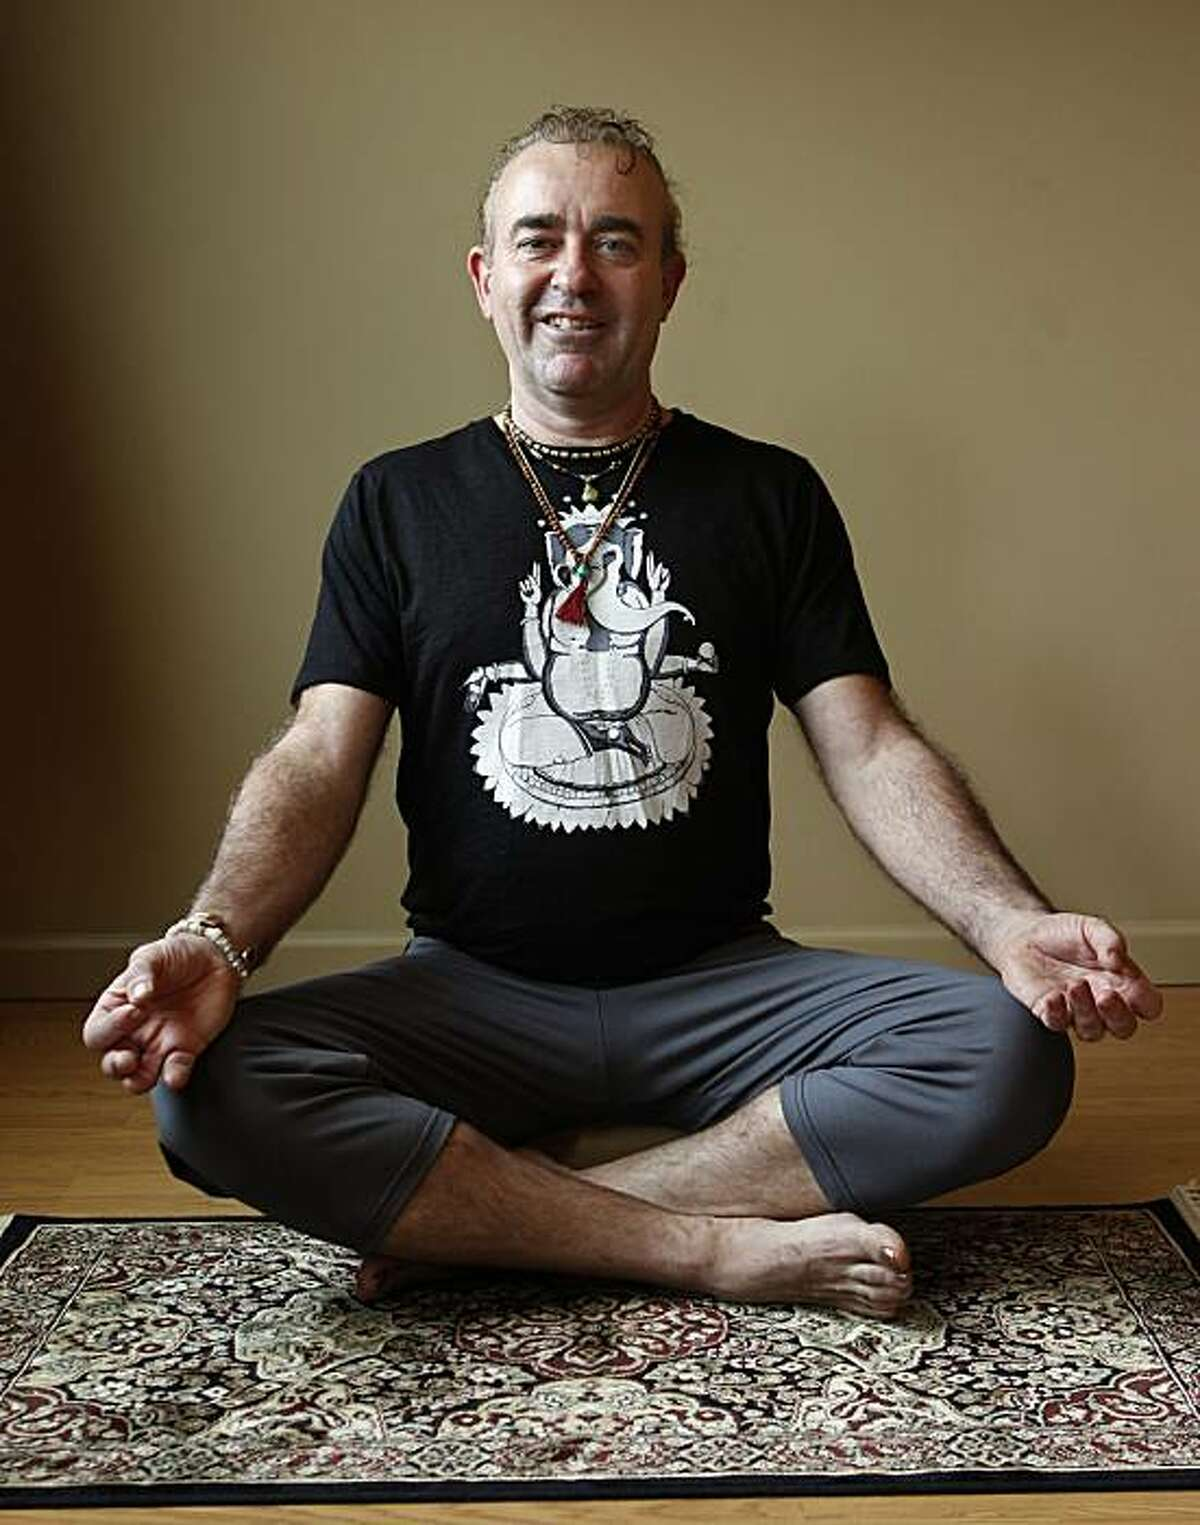 Tim Dale, founder of the Yoga Tree studio, strikes a yoga pose in San Francisco, Calif., on Friday, Dec. 10, 2010.